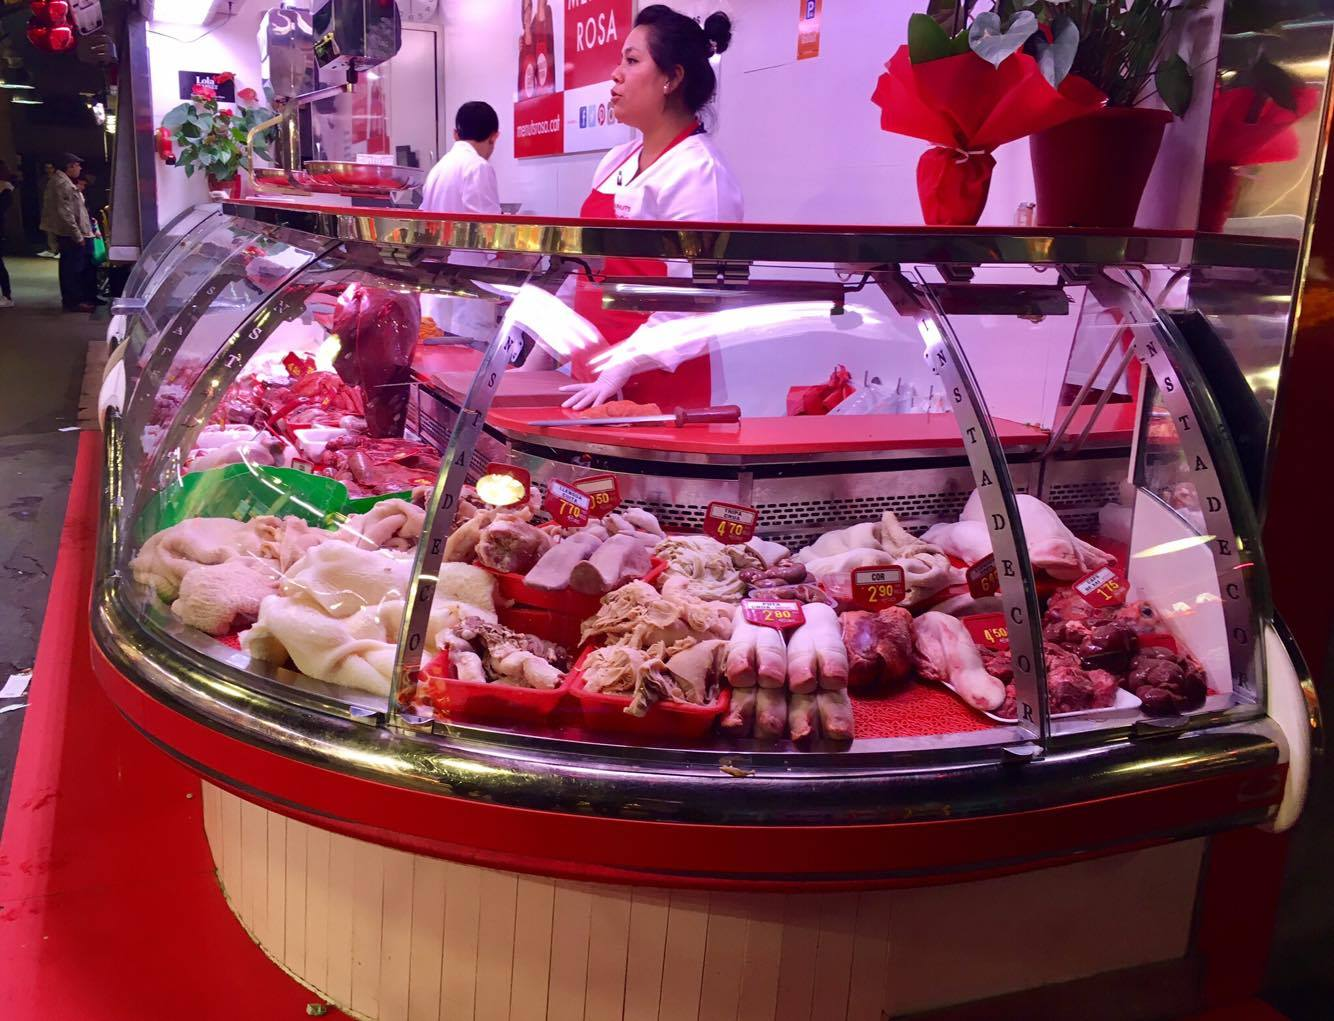 A butcher selling pig hooves, and tripe. Dim sum, anyone?